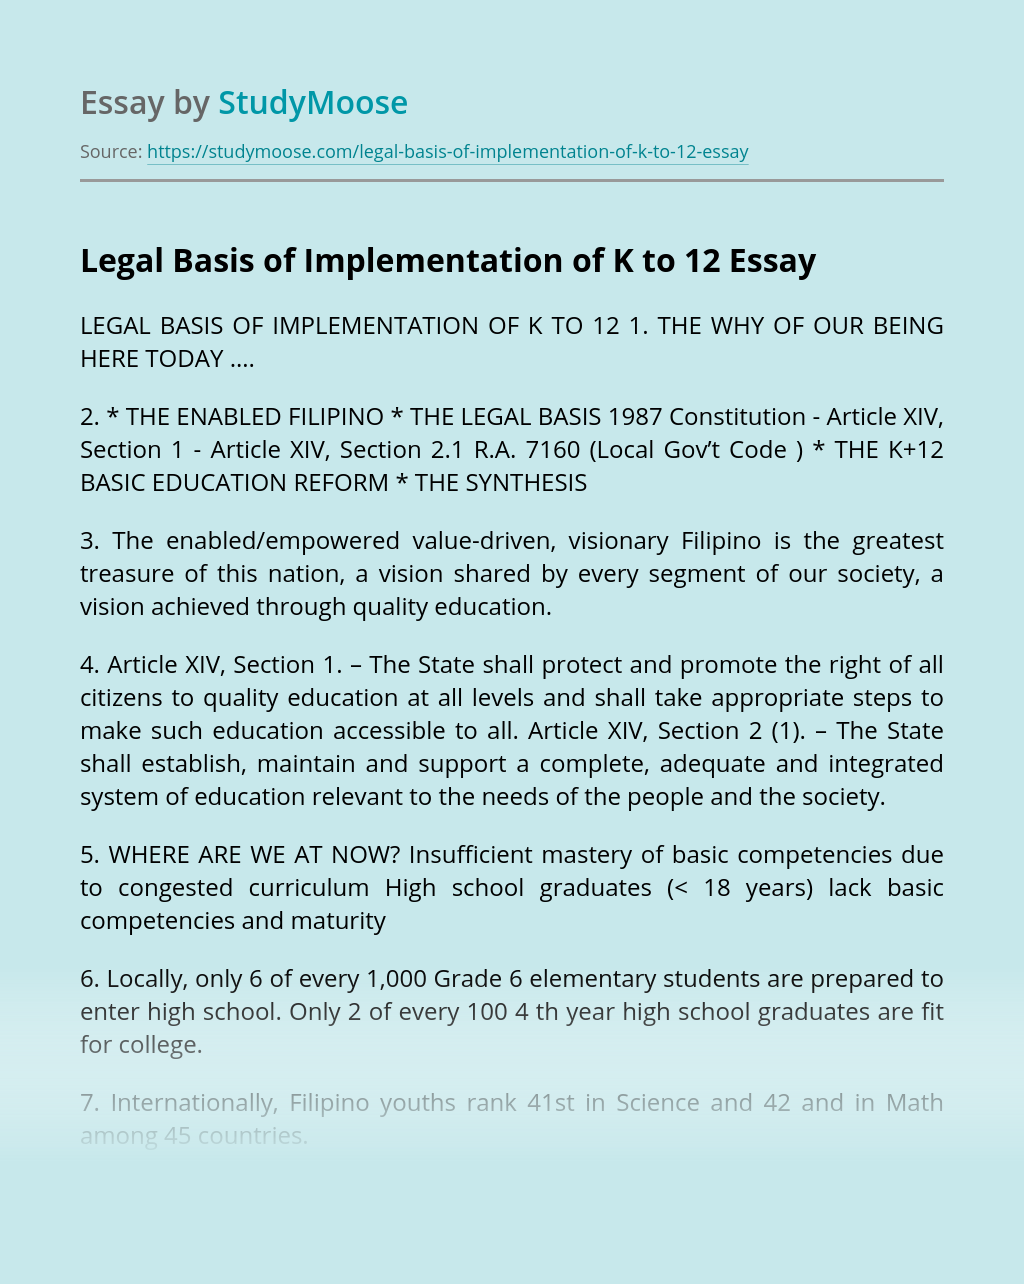 Legal Basis of Implementation of K to 12